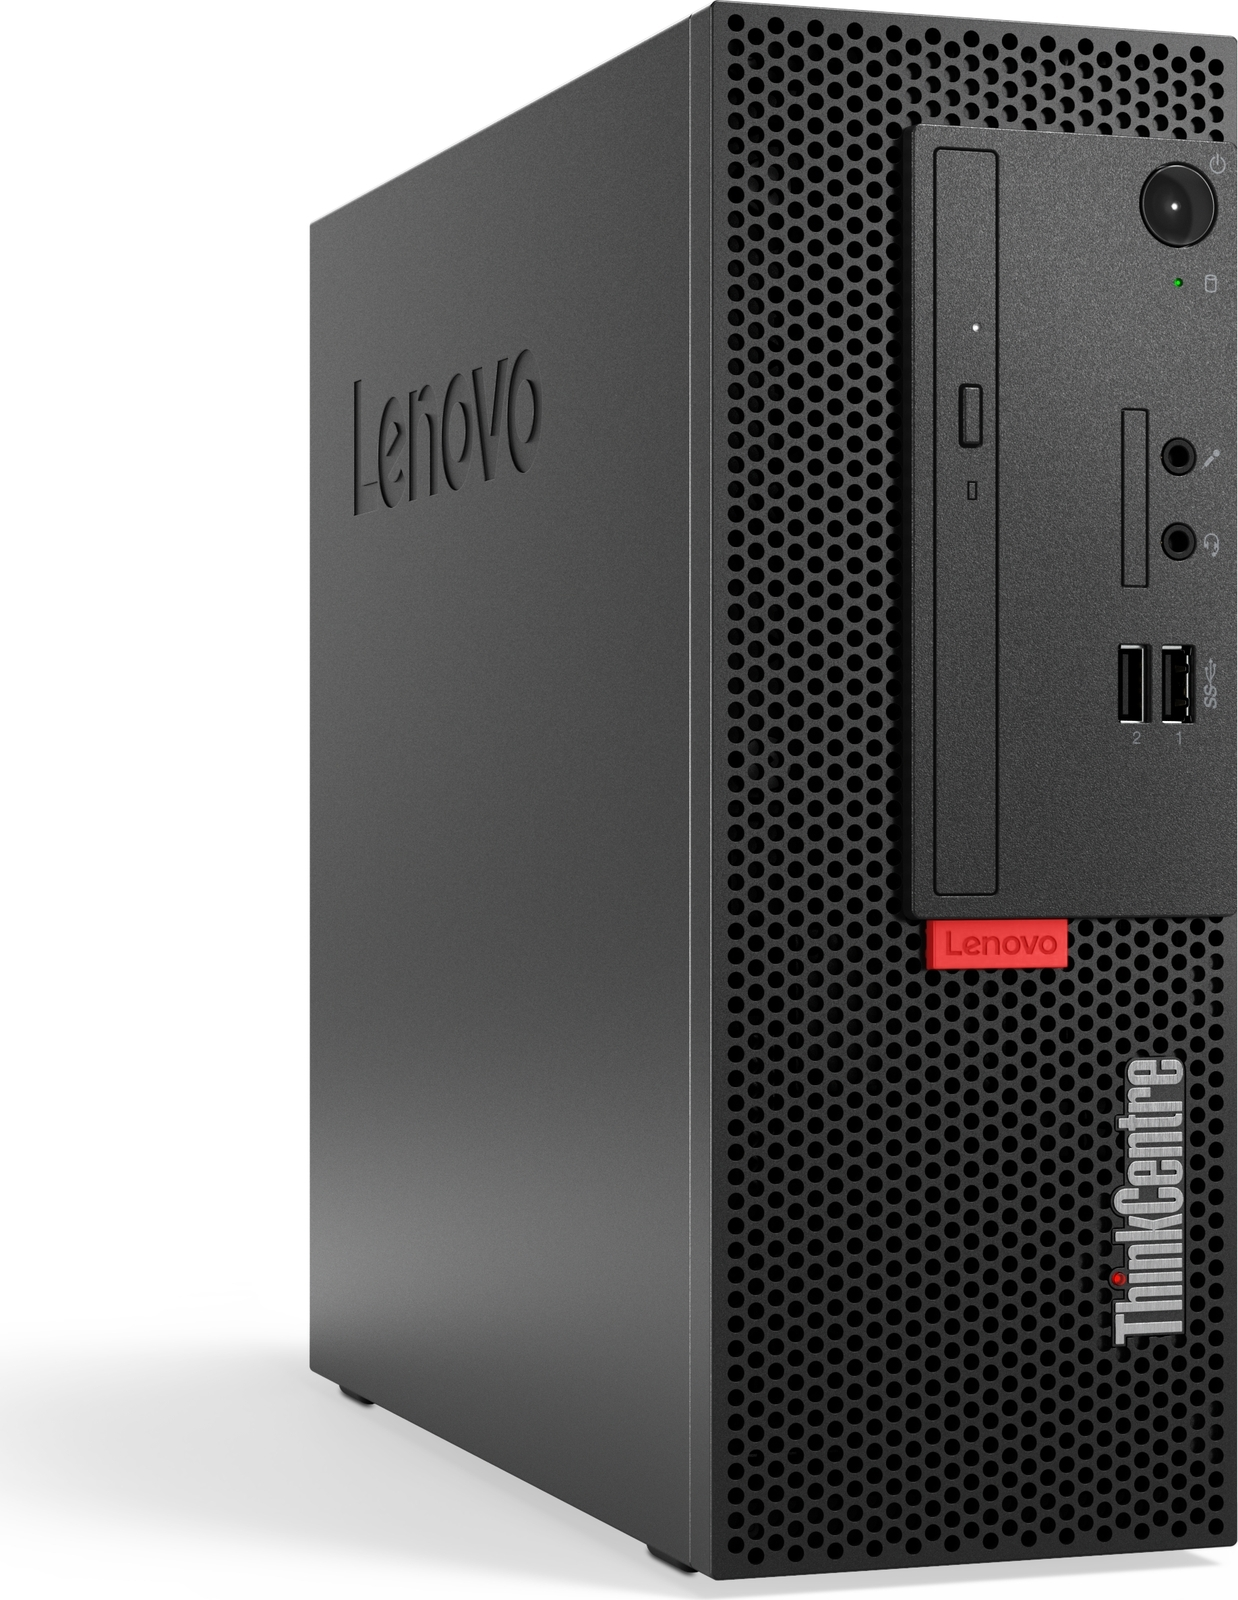 Системный блок Lenovo ThinkCentre M710e SFF, 10UR003RRU, черный системный блок lenovo lenovo thinkcentre m710 tiny i3 7100t 10mr005kru